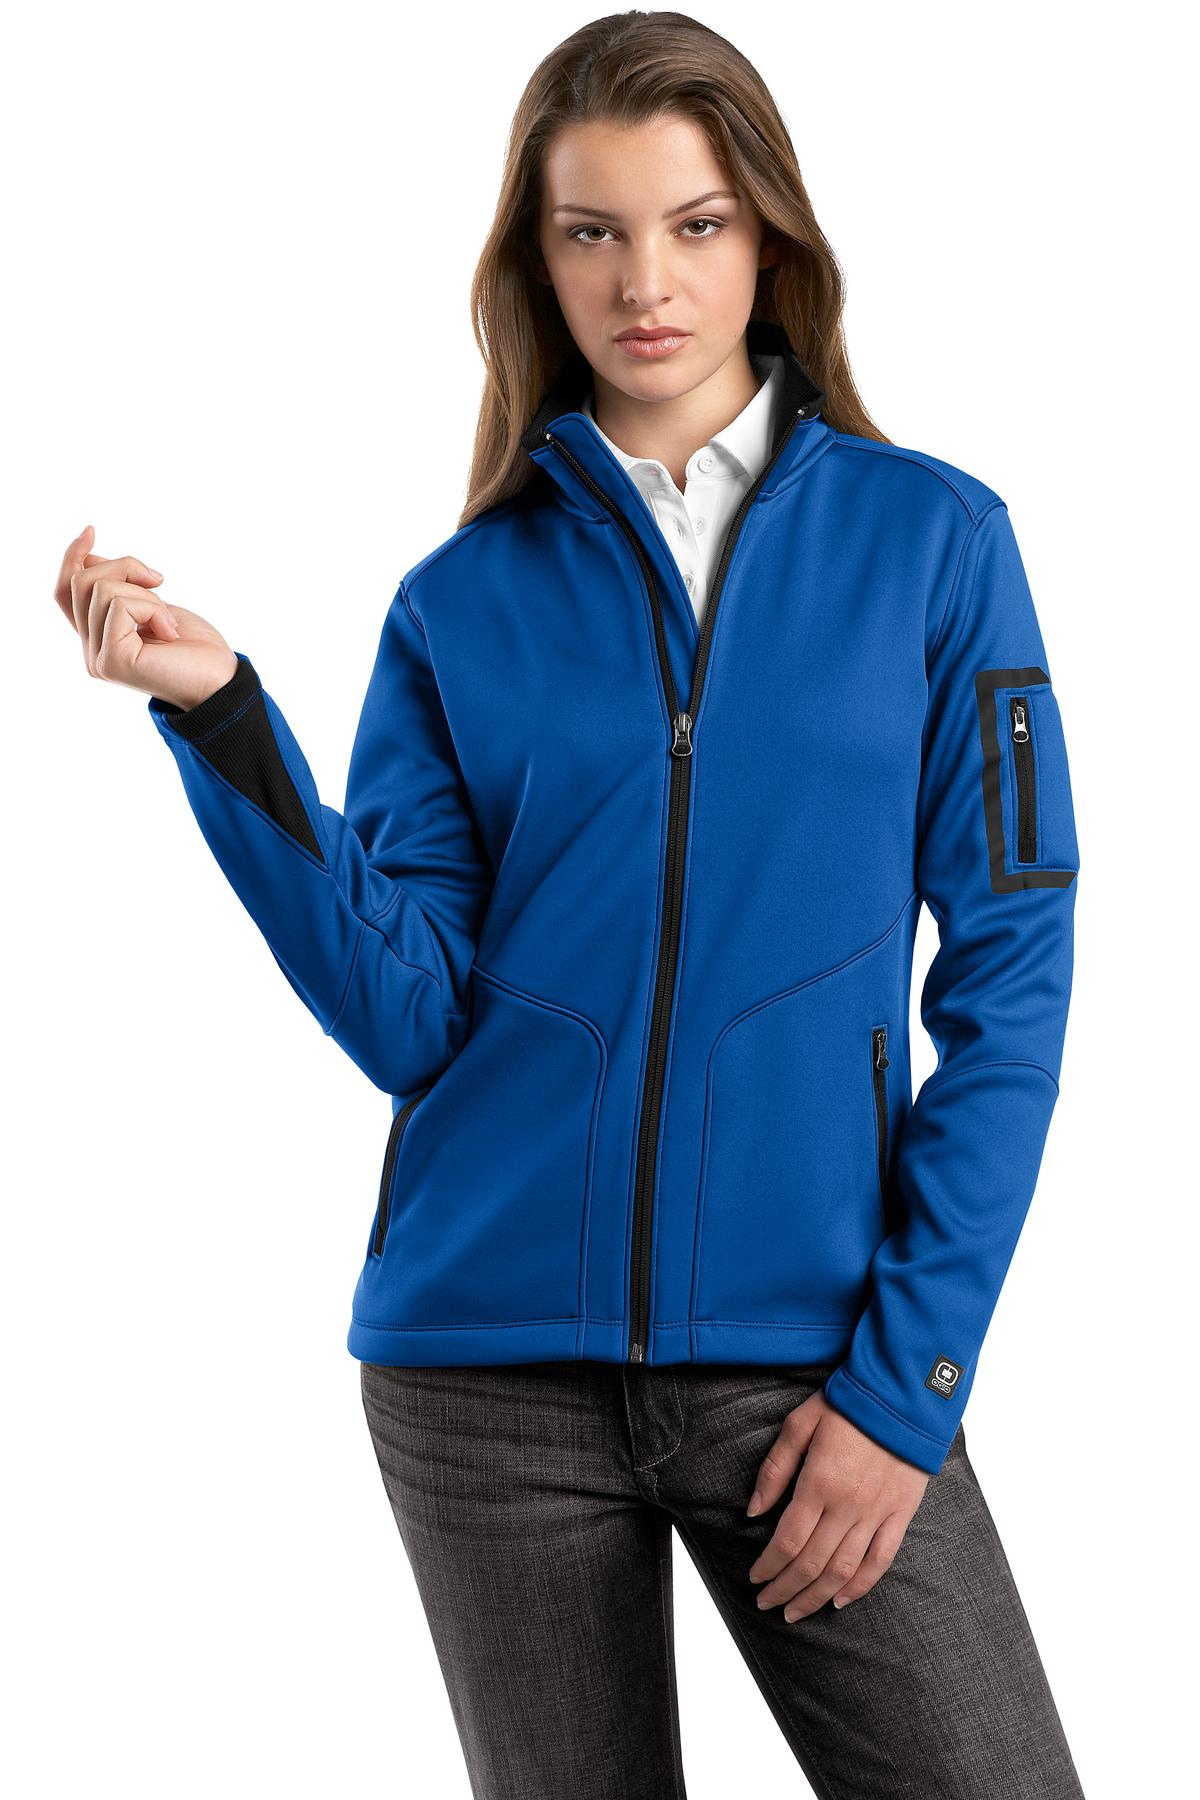 Outerwear-Polyester-Fleece-49